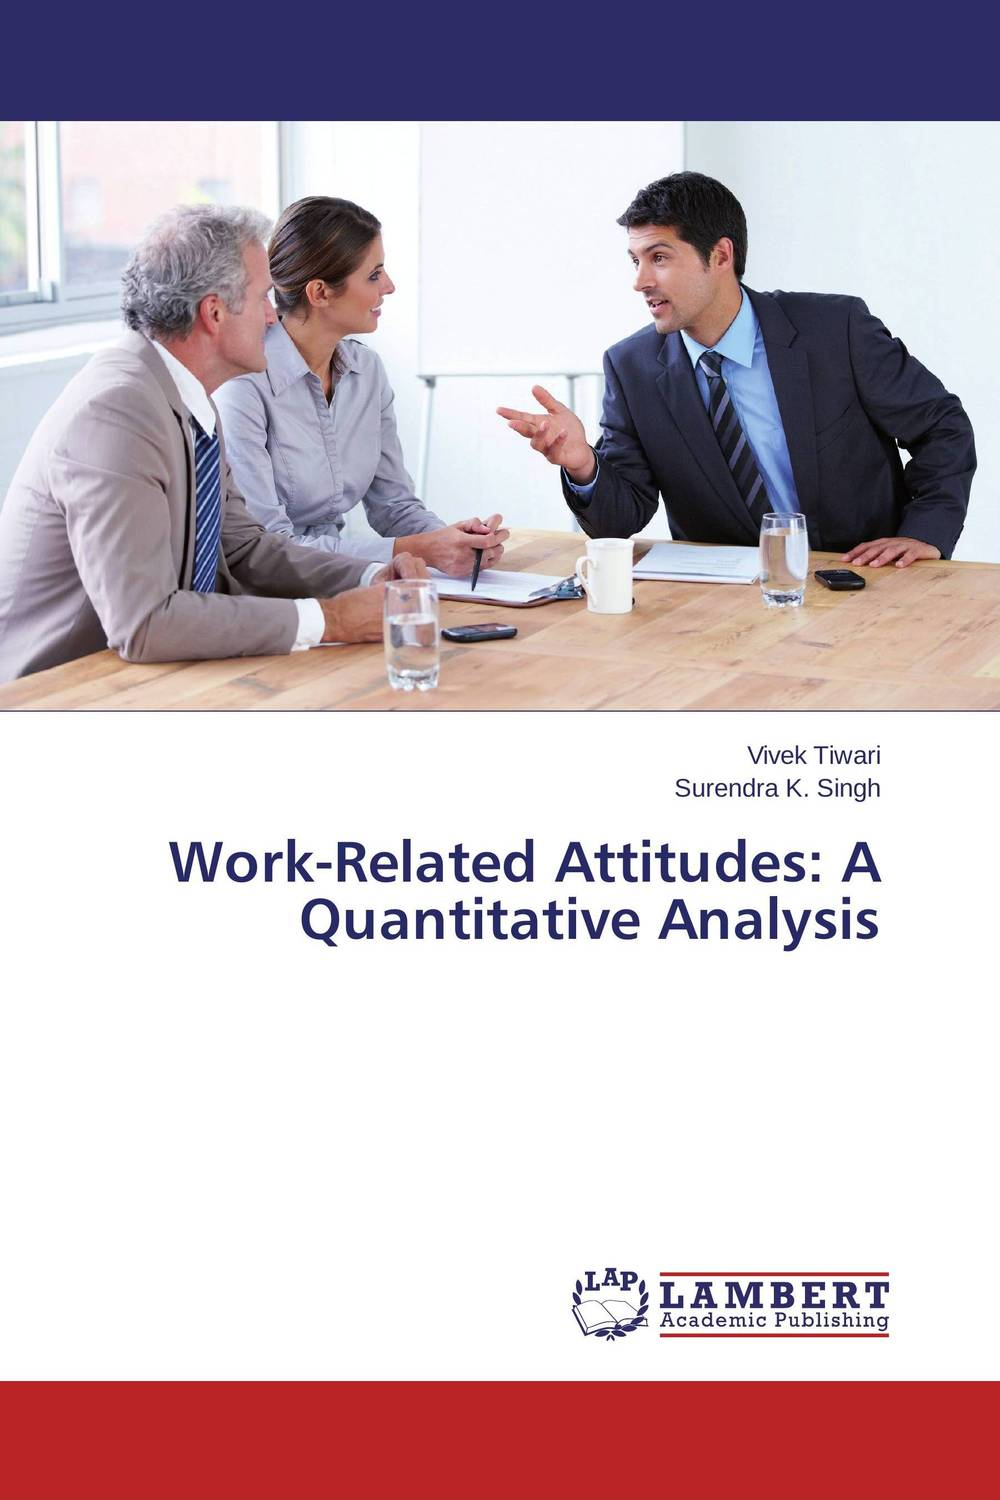 Work-Related Attitudes:  A Quantitative Analysis